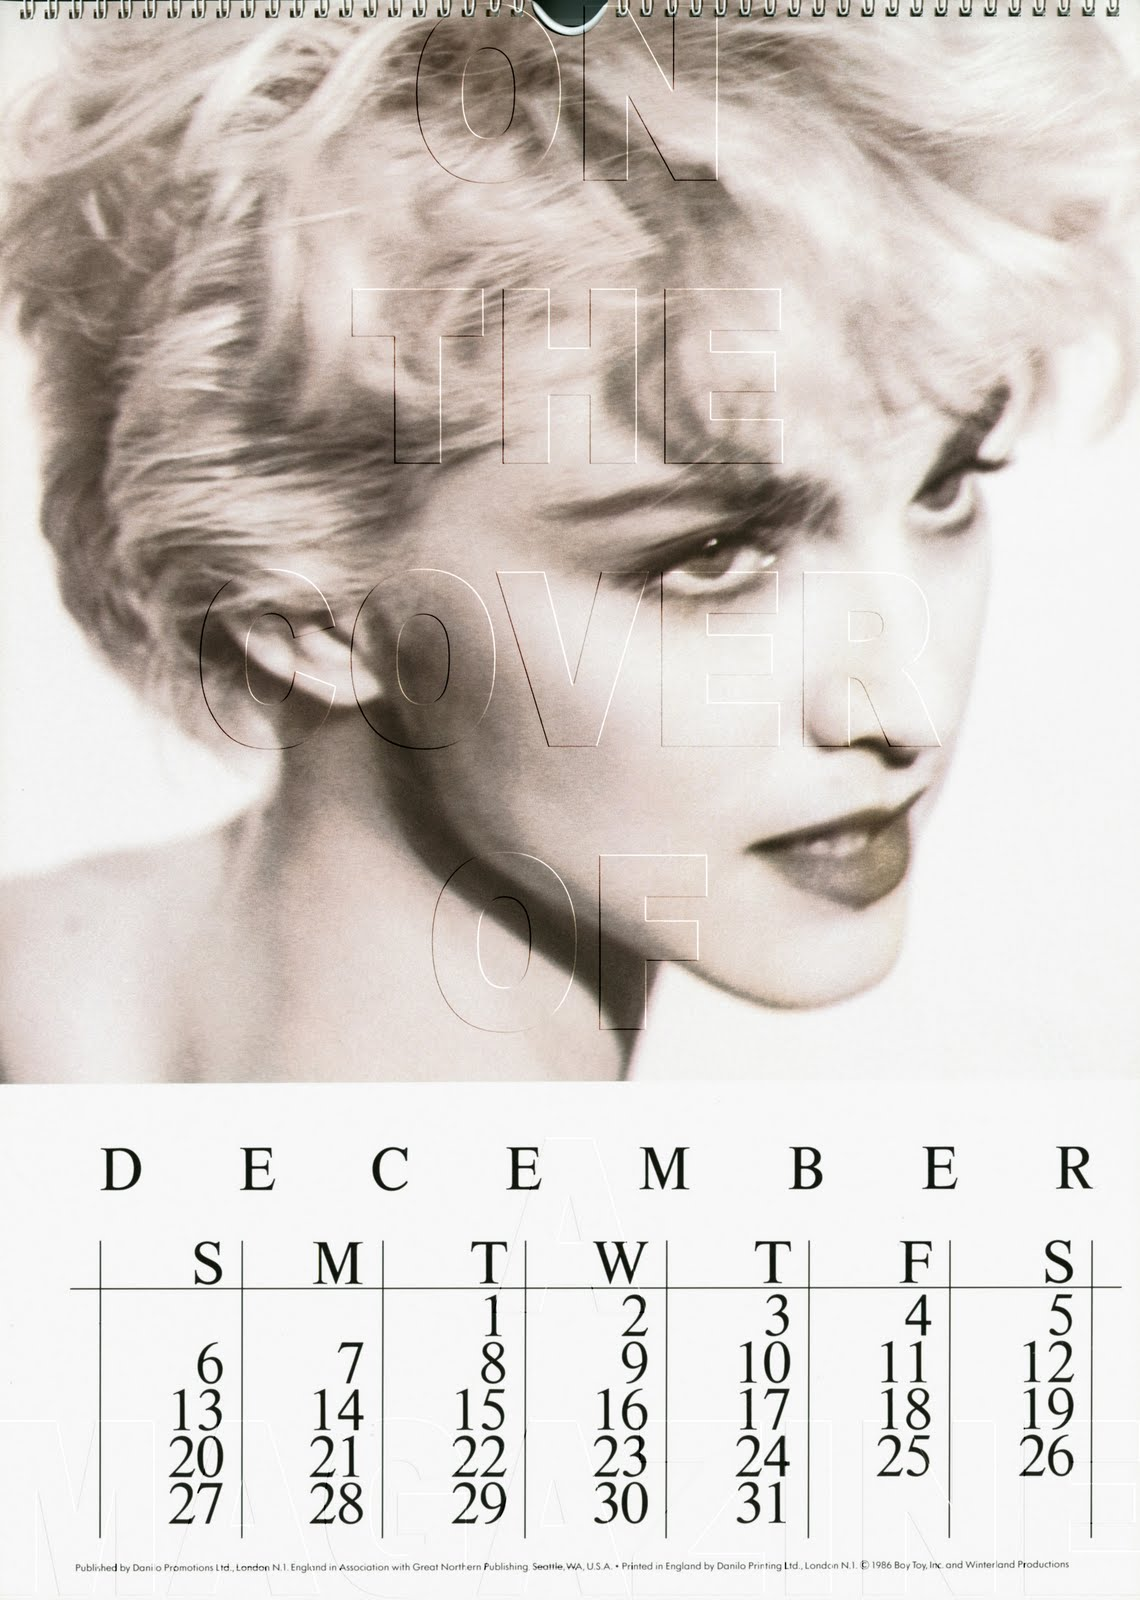 The Official Madonna 1987 Calendar December Herb Ritts Copy The M